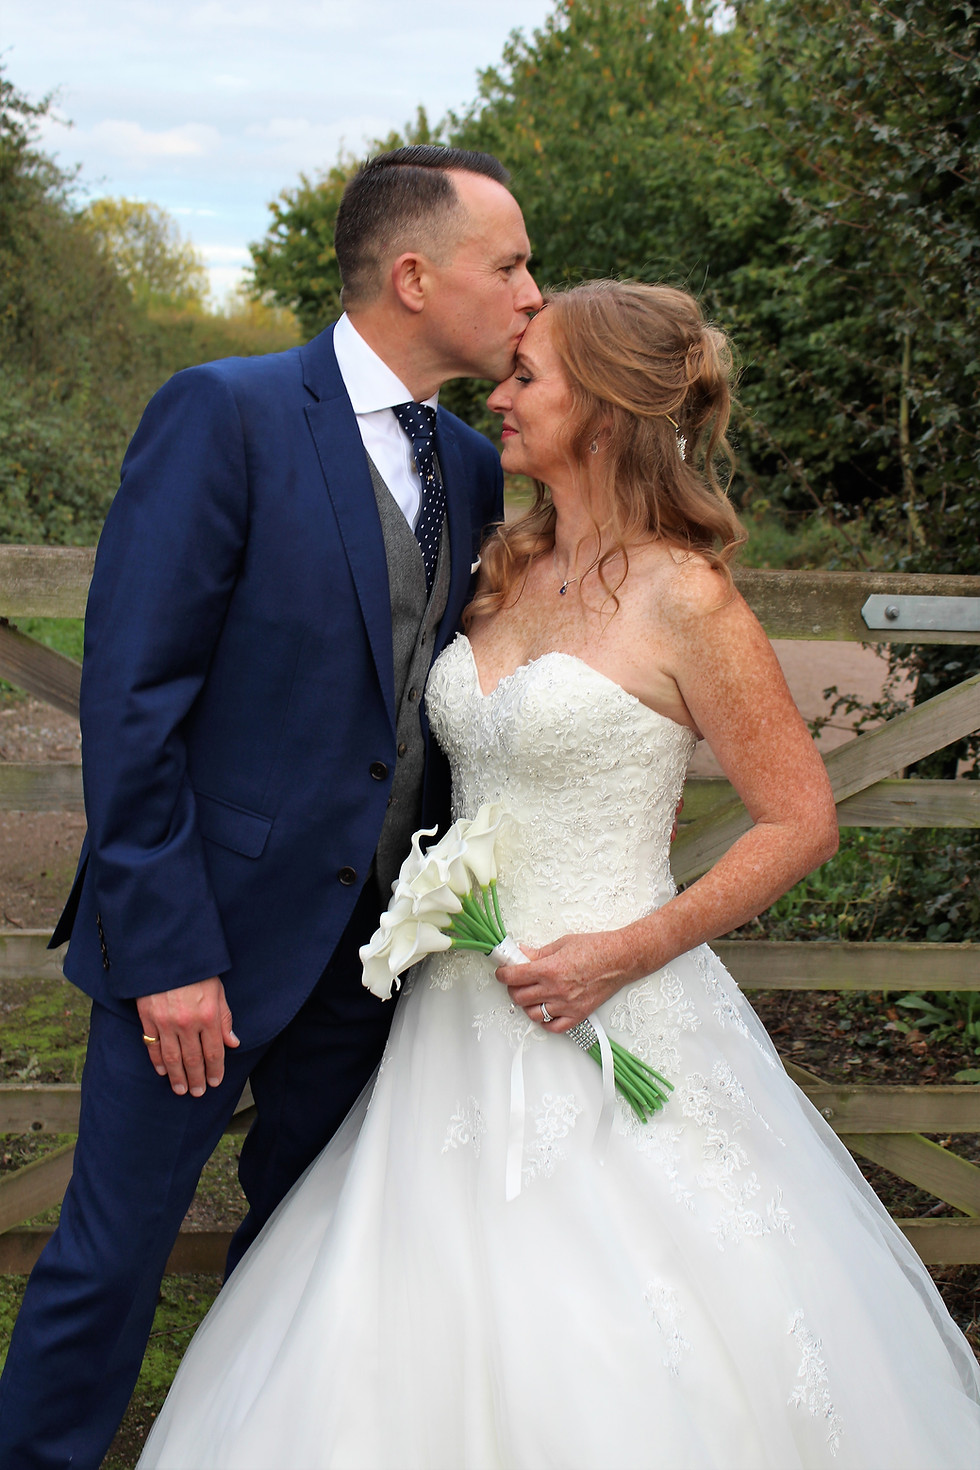 Essex Wedding Photographer, Jenni Sullivan